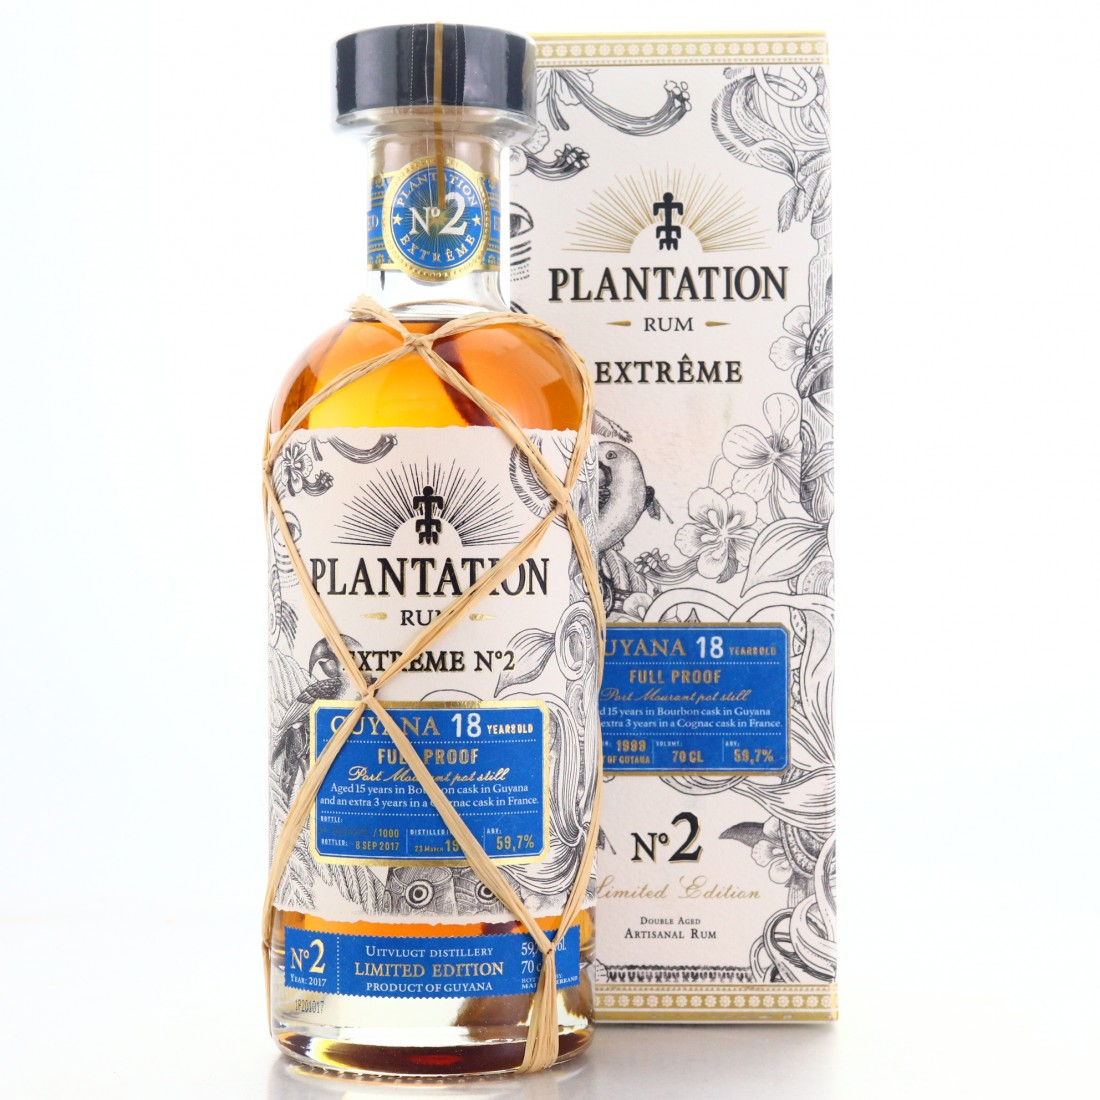 Port Mourant 1999 Plantation 18 Year Old Extreme No.2